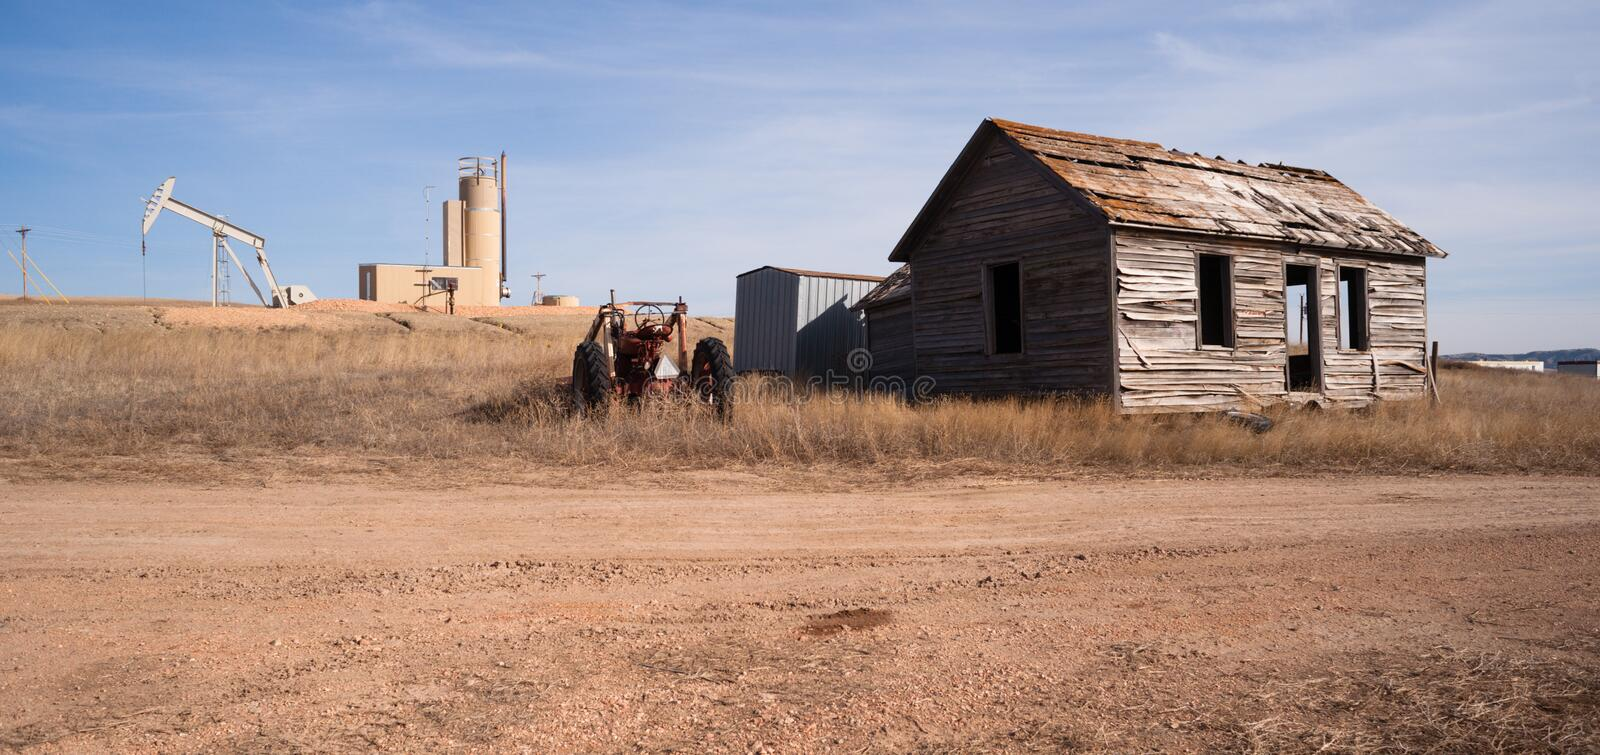 Fracking Operation Built on Previous Farmland Abandoned Cabin. An abandoned tractor and cabin sit in the foreground of a fracking oil pump jack royalty free stock images